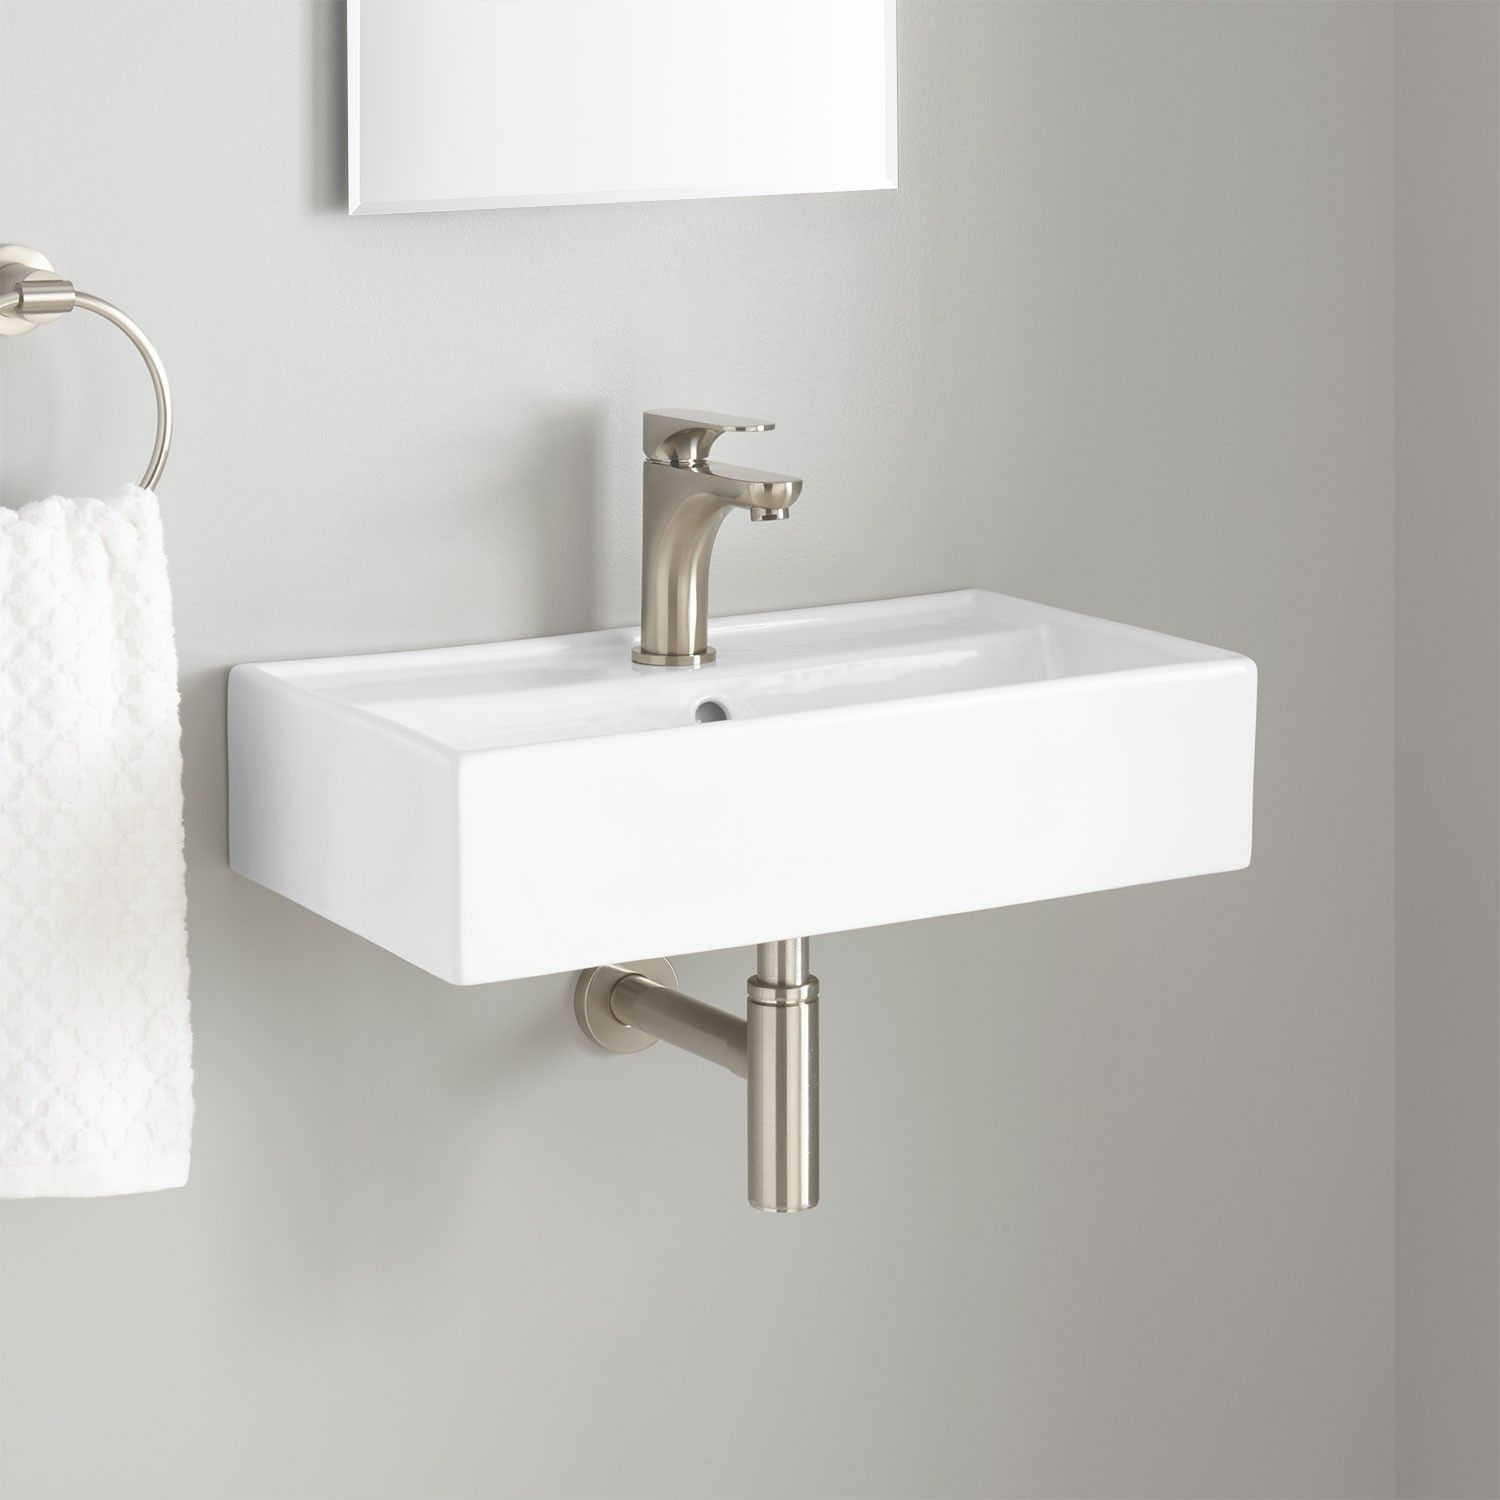 Wall Mounted Bathroom Sinks Modern